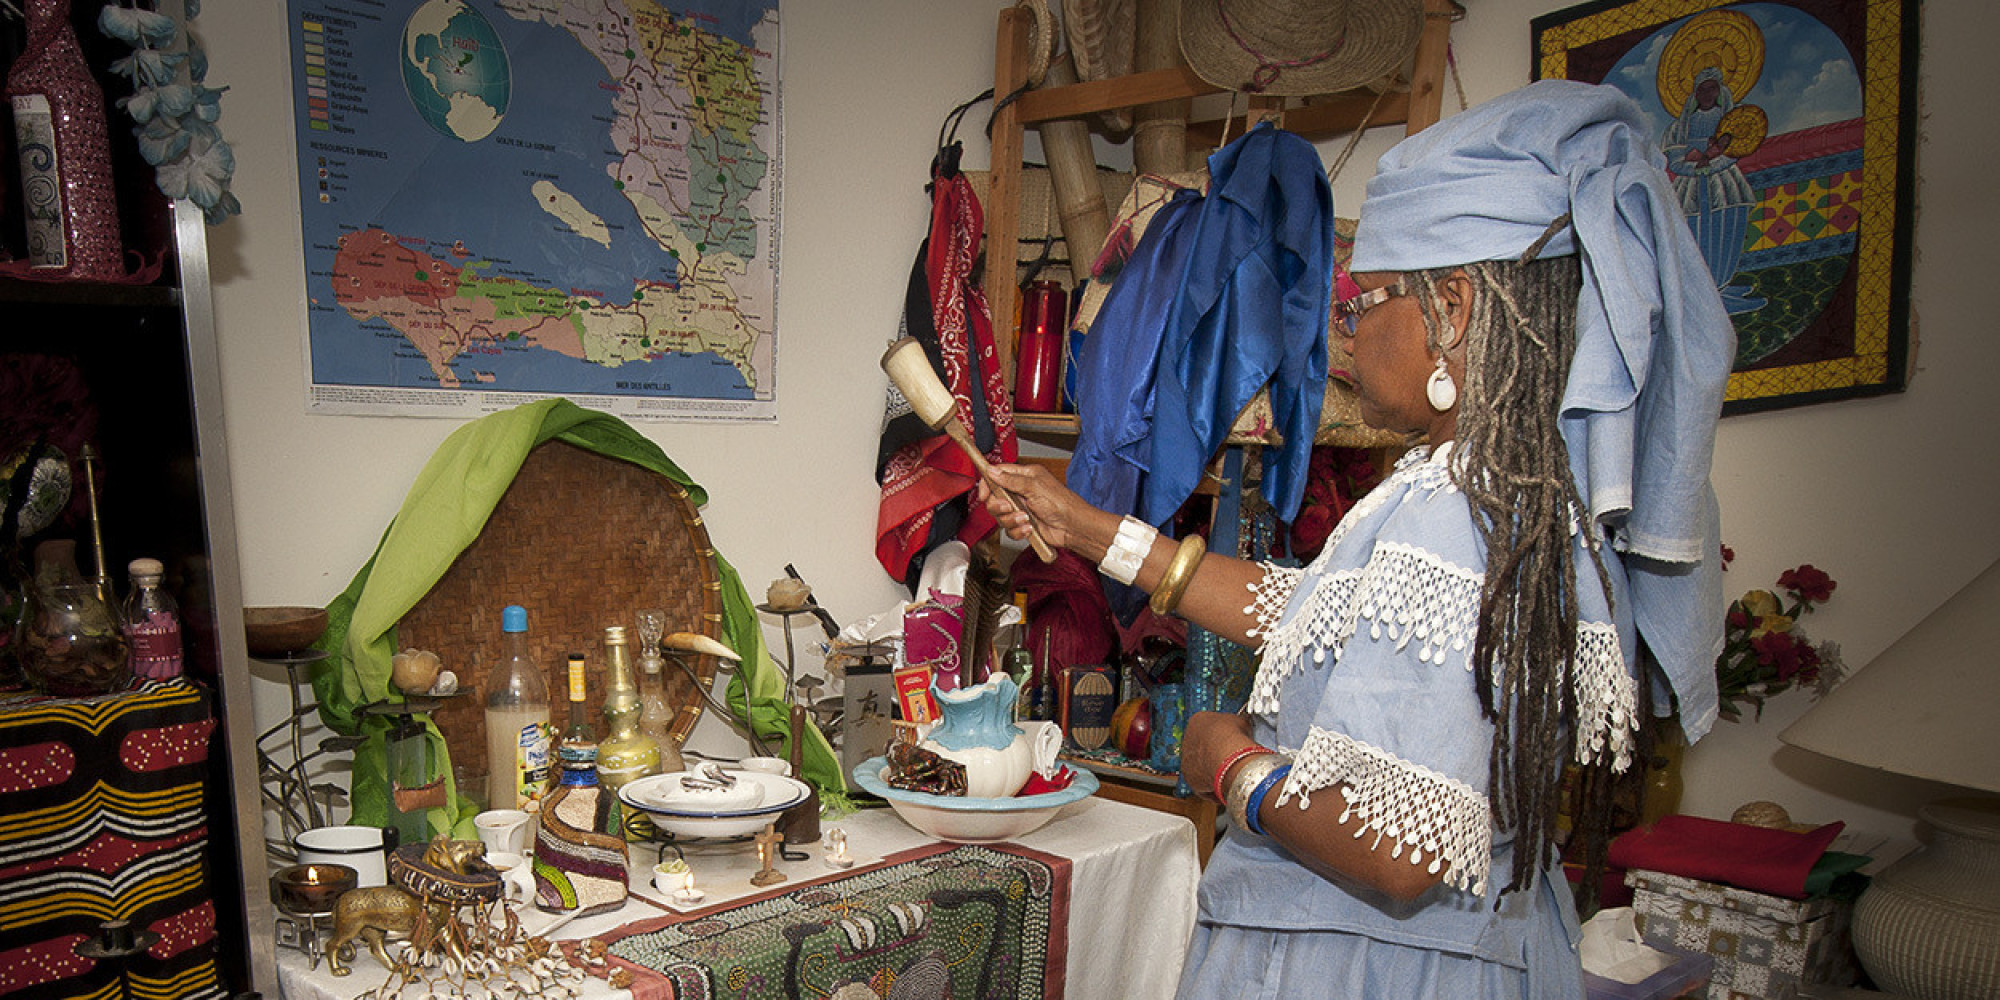 The World Of Vodou Exhibit Brings To Life A Highly